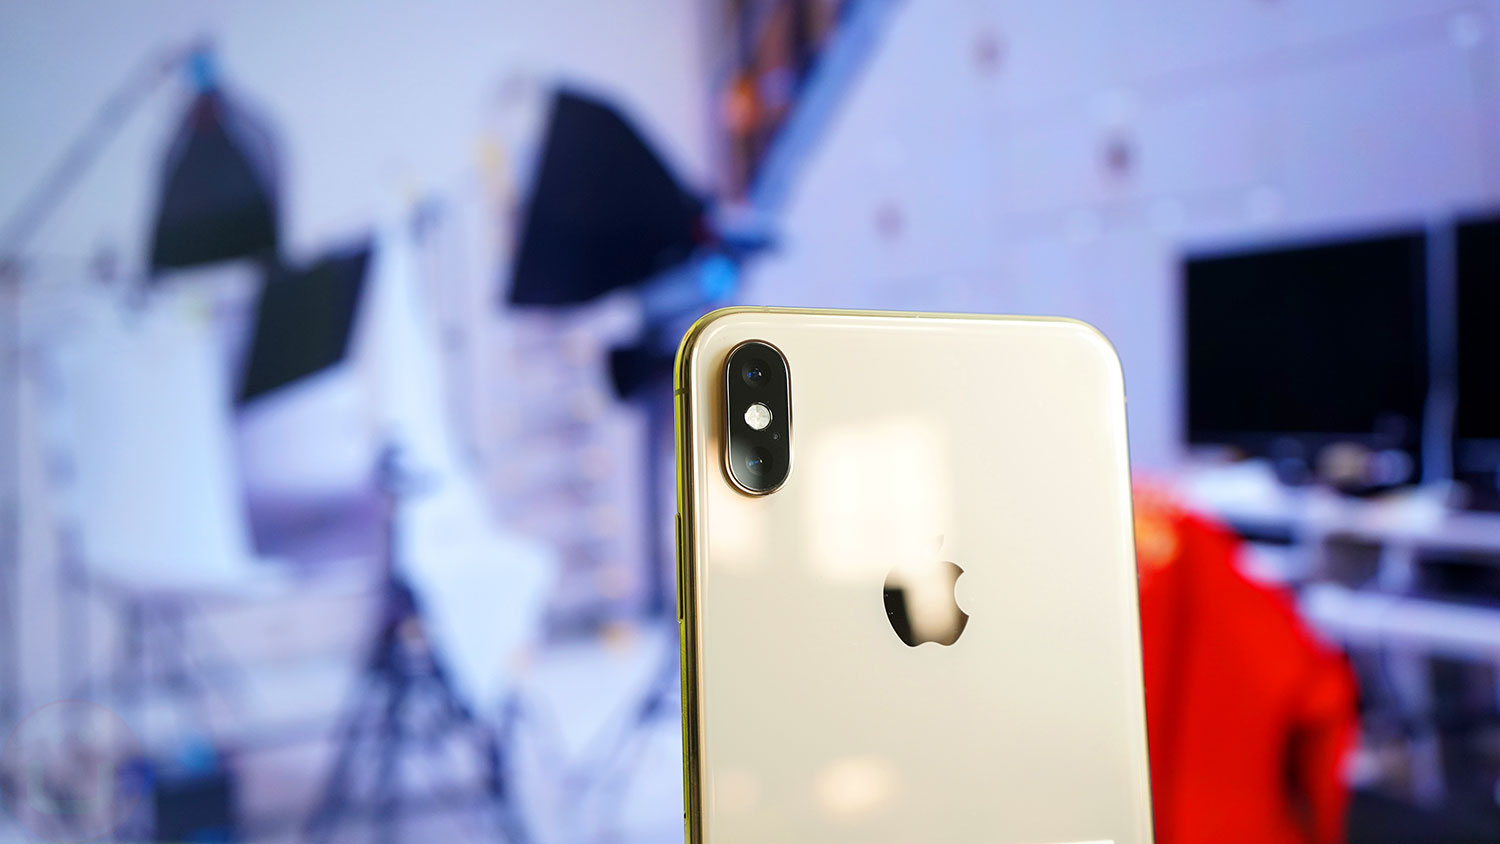 iPhones Could Be In Short Supply Until Q2 2020